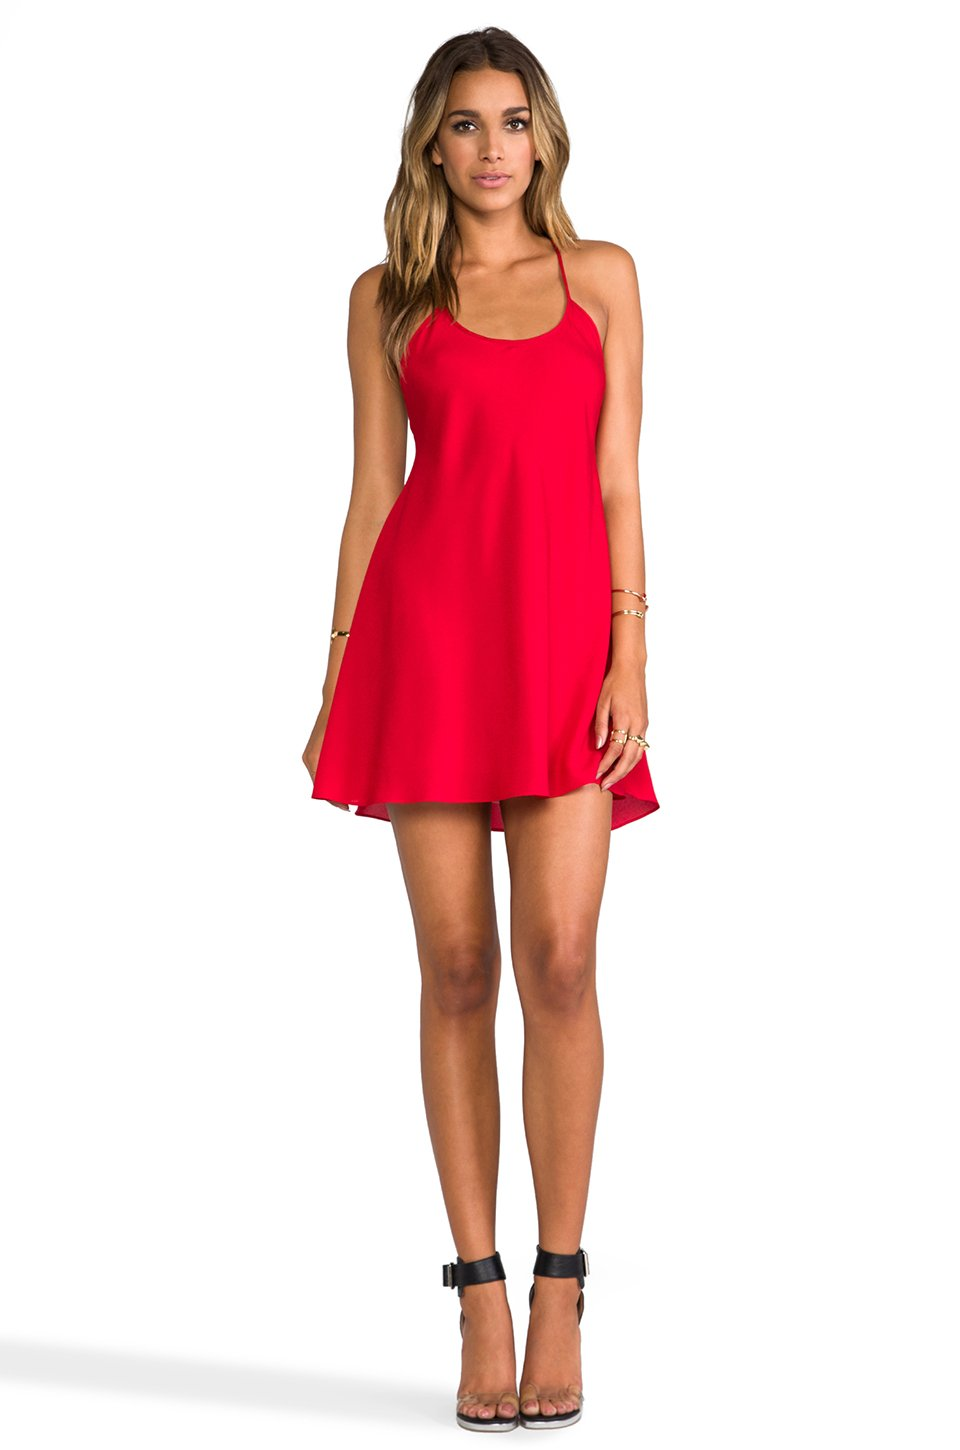 7443619f3 Red Babydoll Dress - The Best Style Dress In 2018